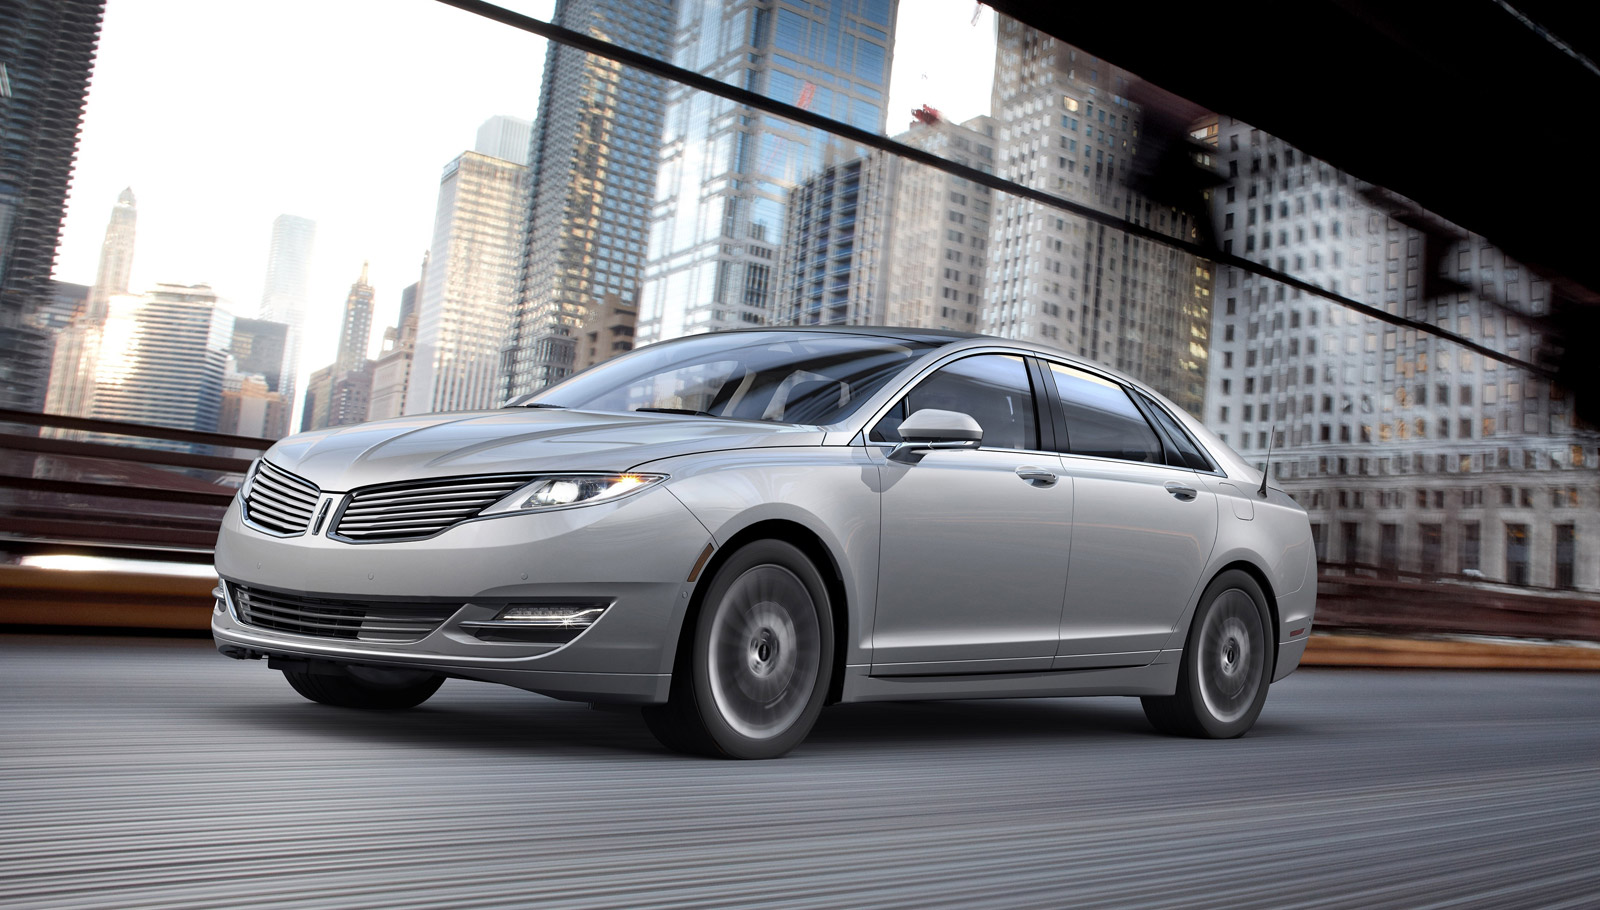 2013 lincoln mkz review ratings specs prices and photos the car connection. Black Bedroom Furniture Sets. Home Design Ideas